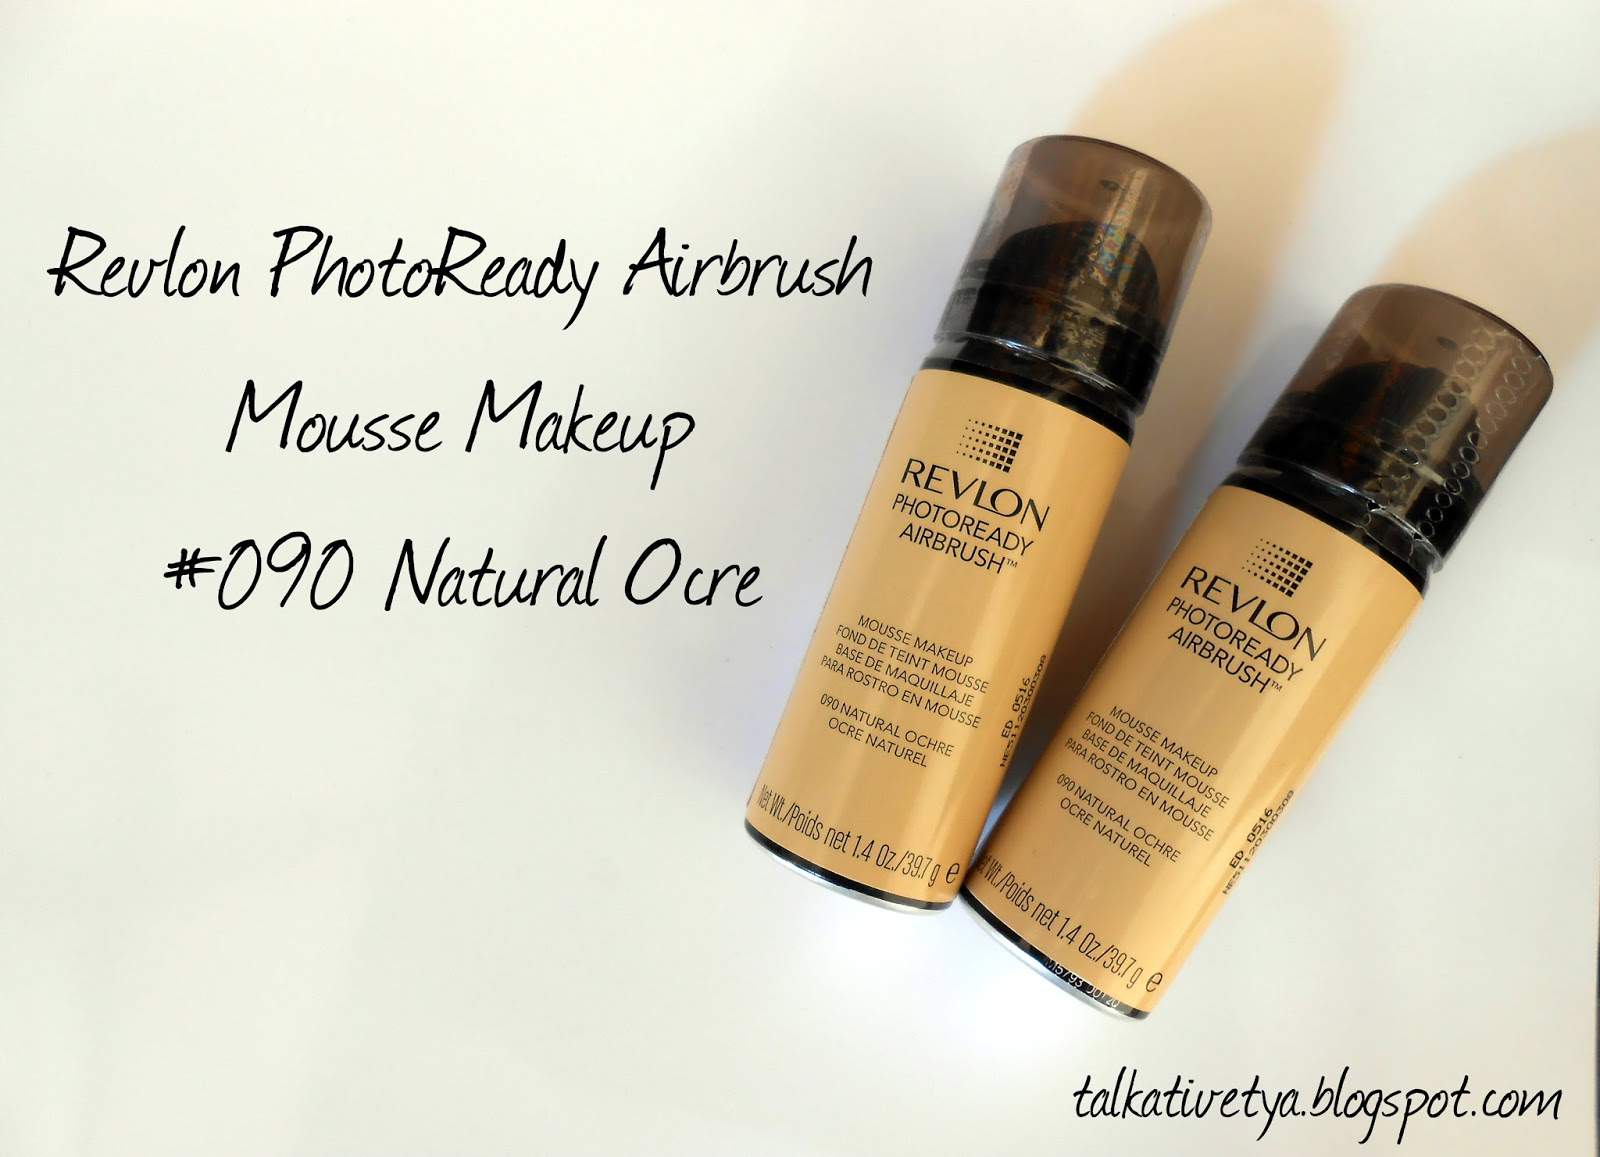 Revlon Photoready Airbrush Mousse Makeup Foundation Shades Effect Nude Review 090 Natural Ocre